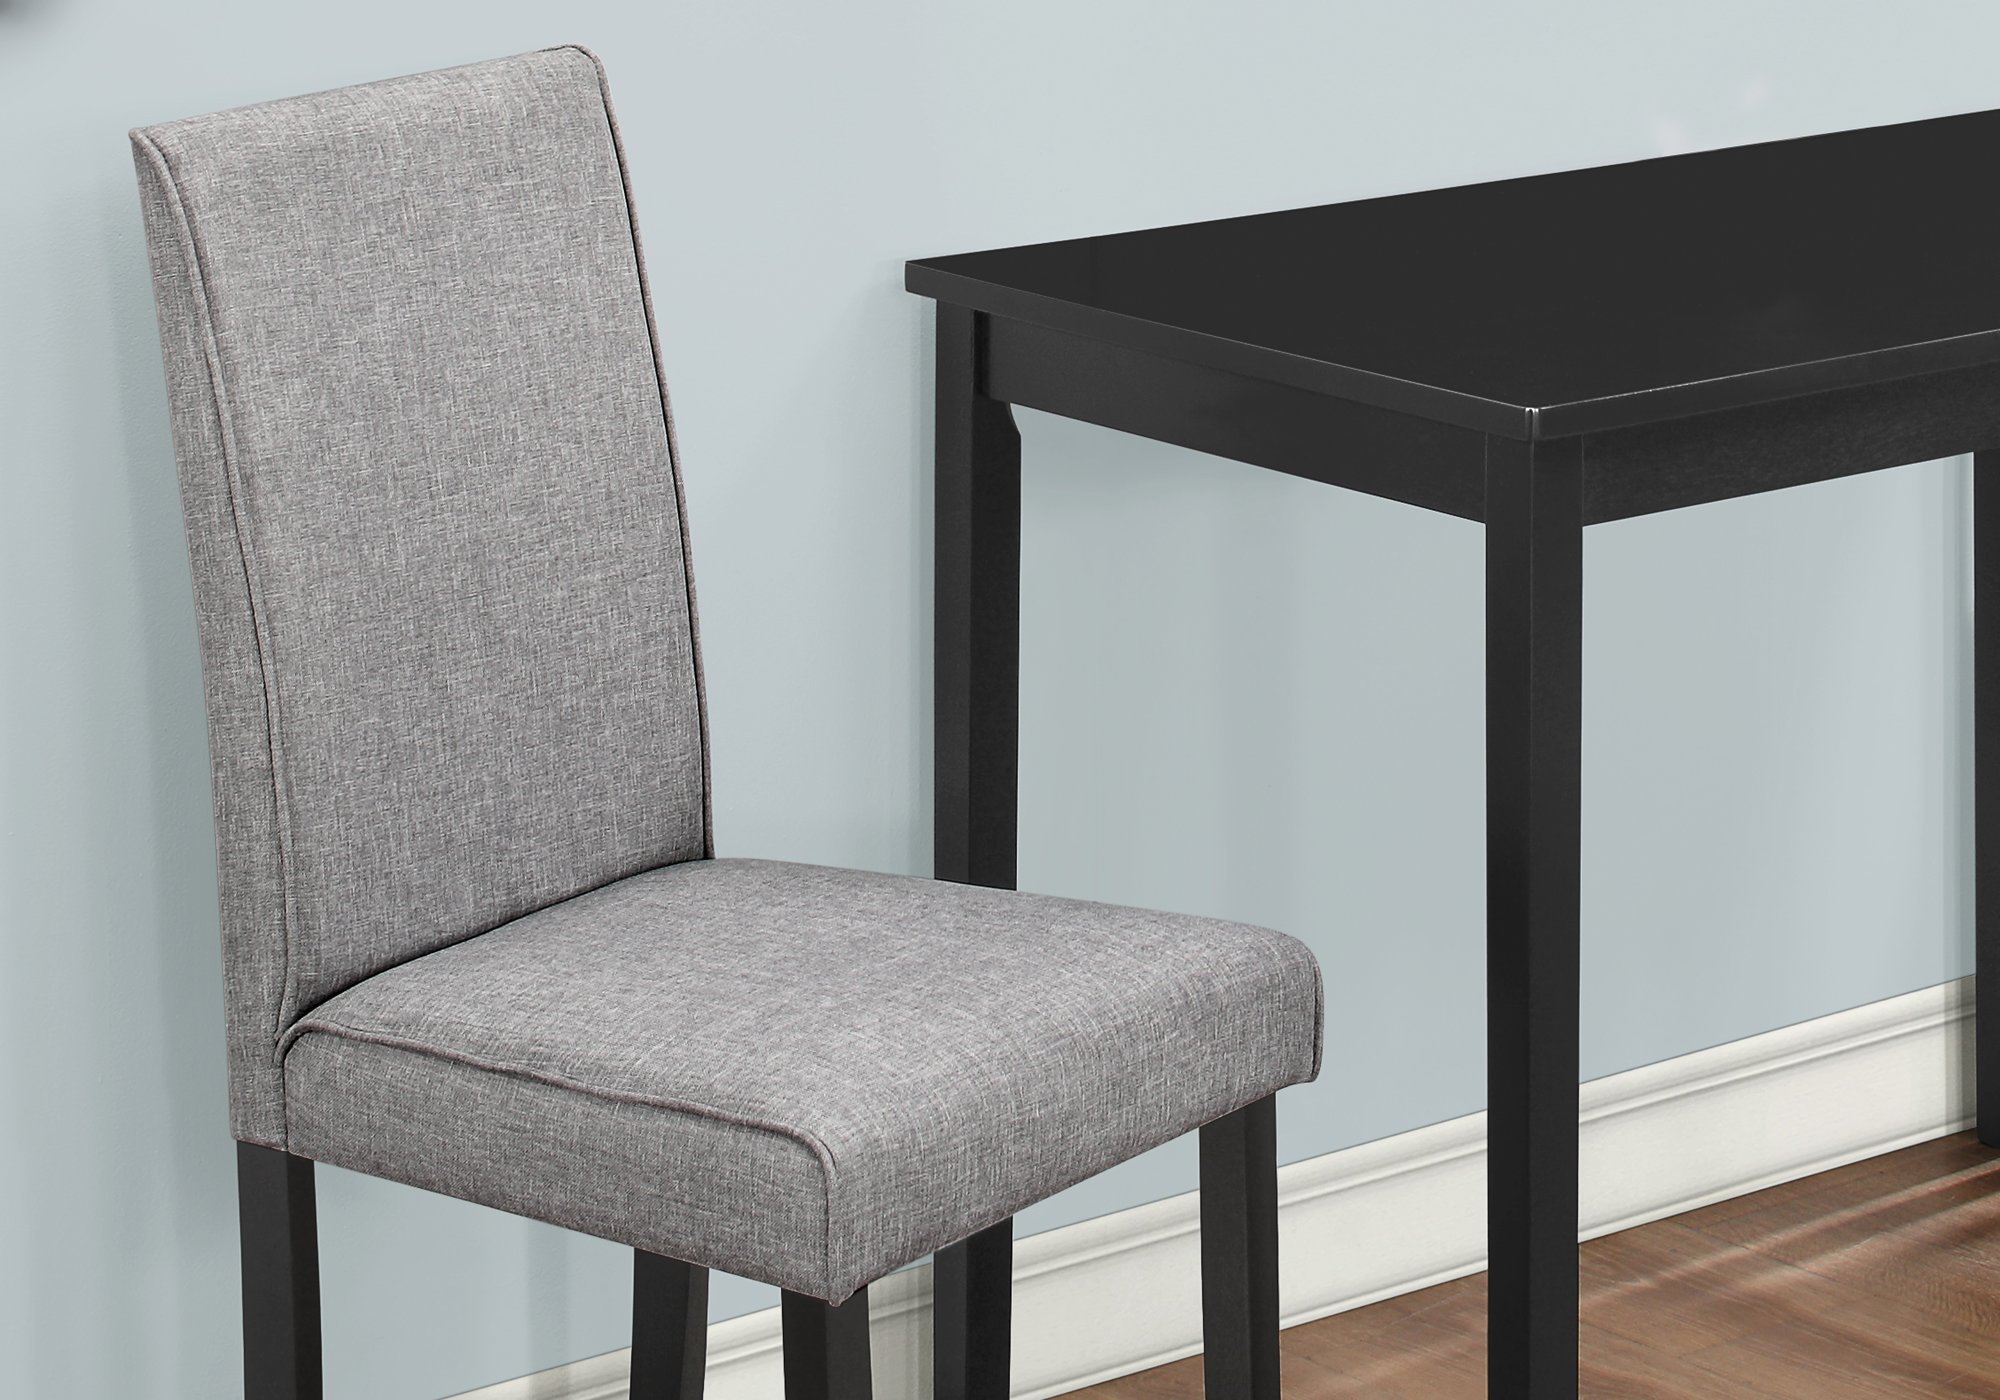 Monarch Specialties I 1016, Dining Set Set, Parson Chairs, Black/Grey, 3pcs by Monarch Specialties (Image #4)